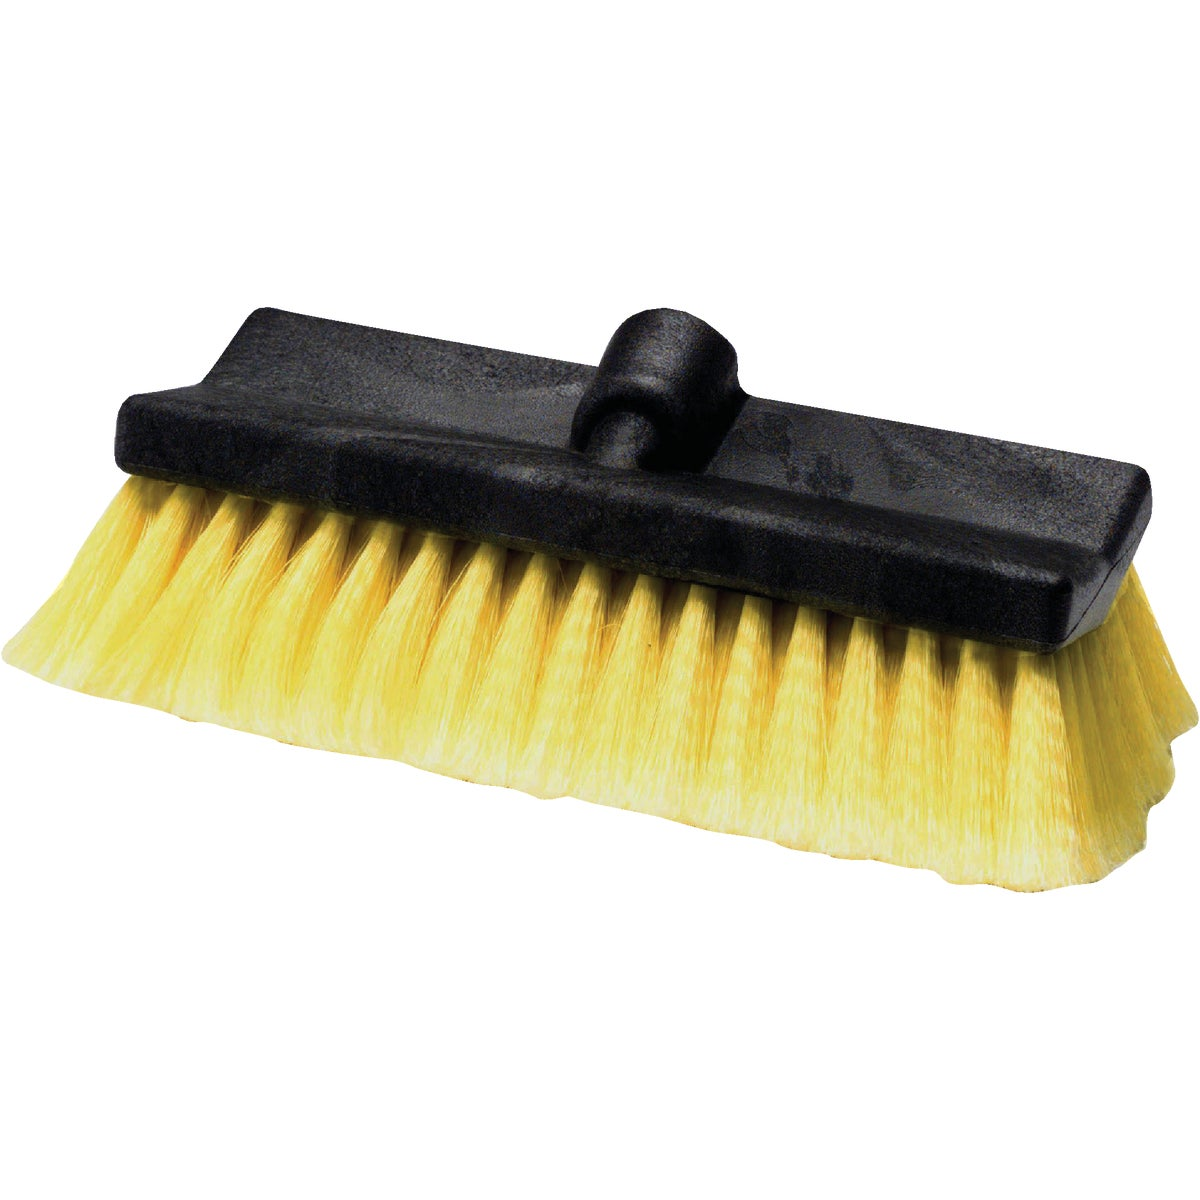 Carrand Co. Replacement Wash Brush Head